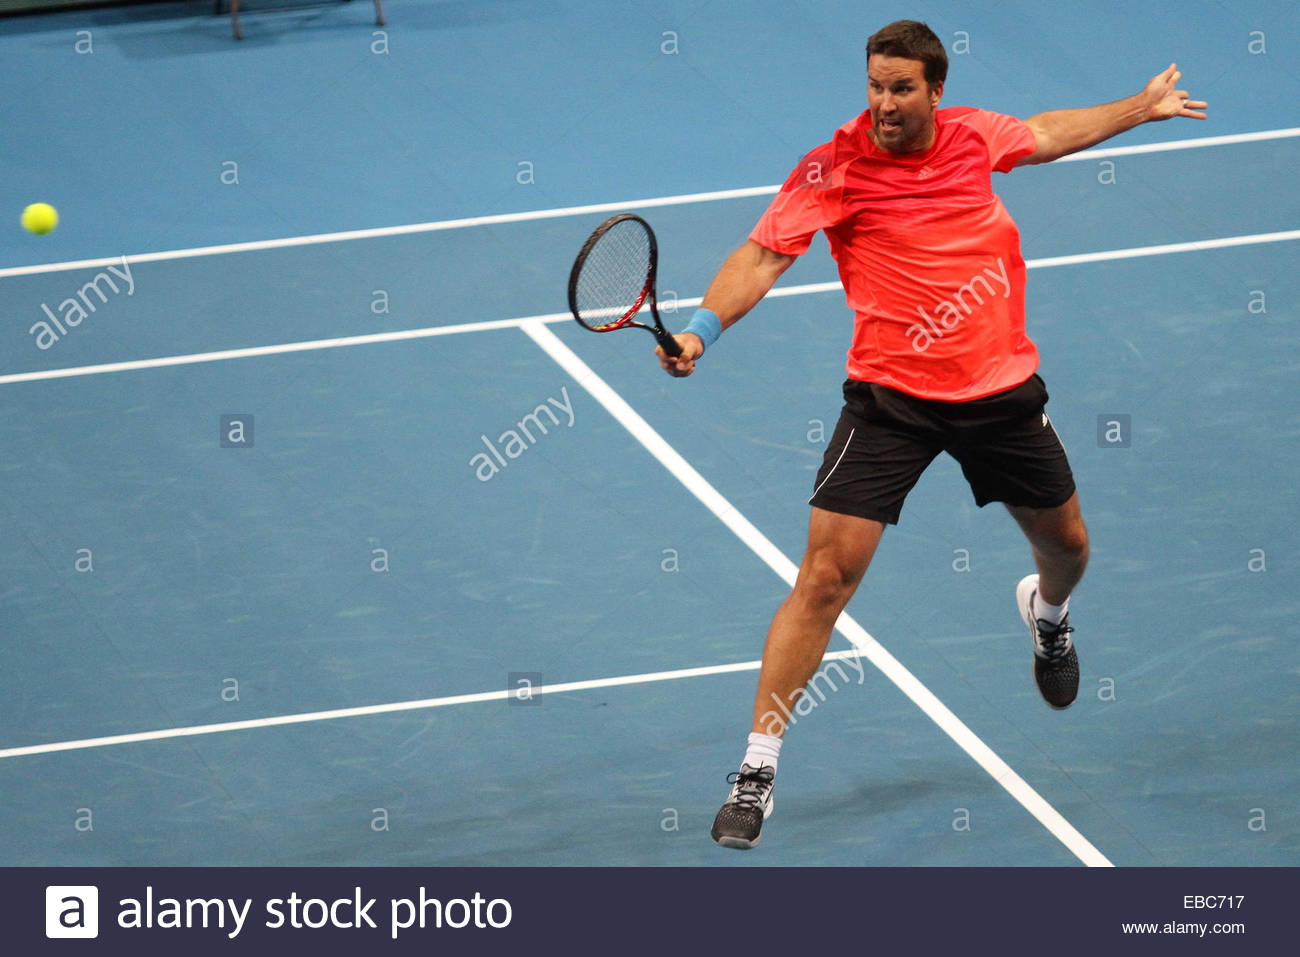 Patrick Rafter of the Singapore Slammers makes a backhand return